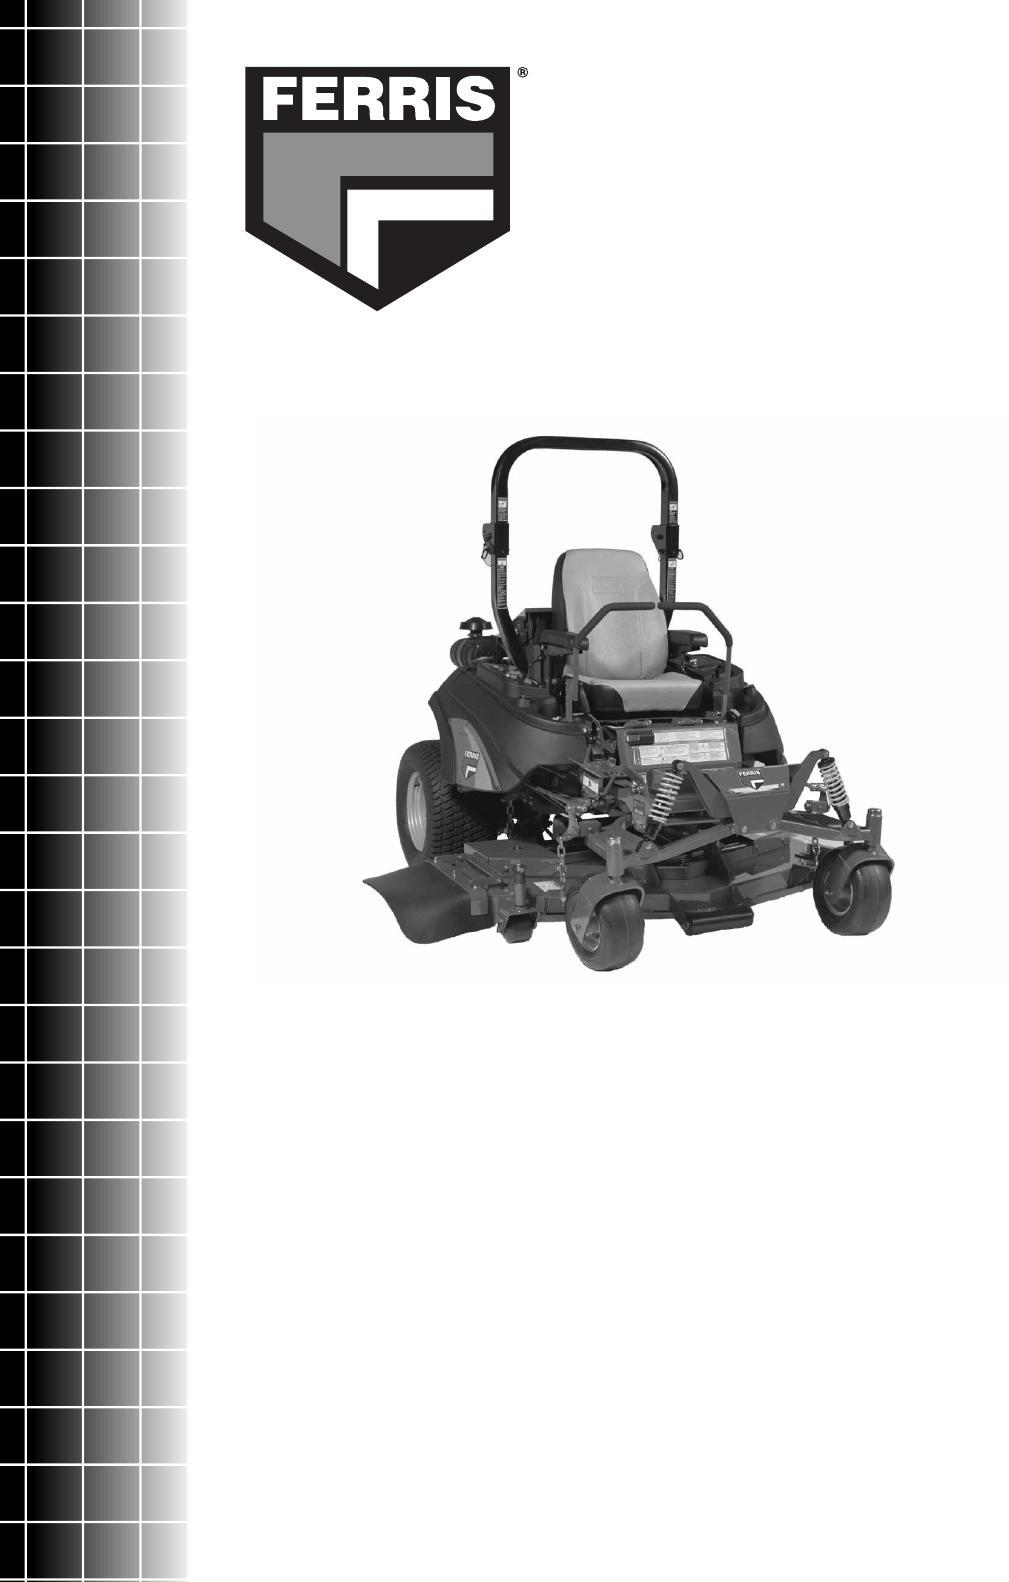 Ferris Industries IS4500Z Parts Manual Download - Page 1